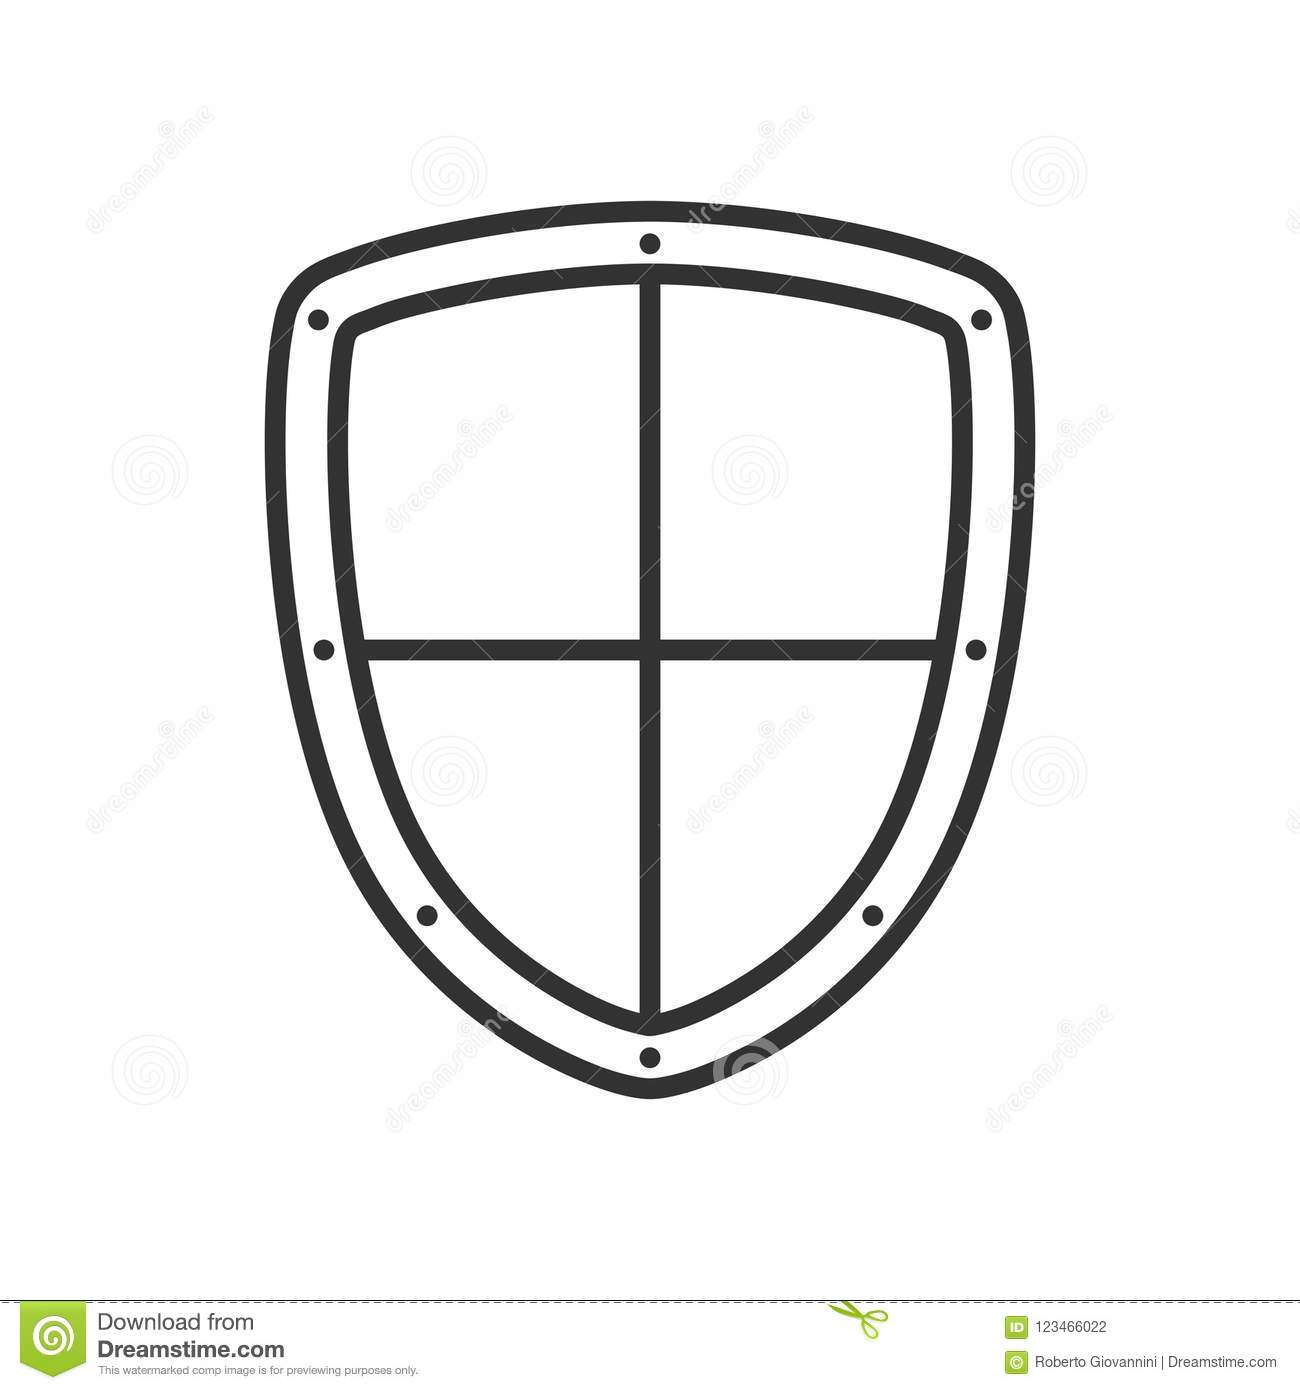 Security Shield Outline Flat Icon on White